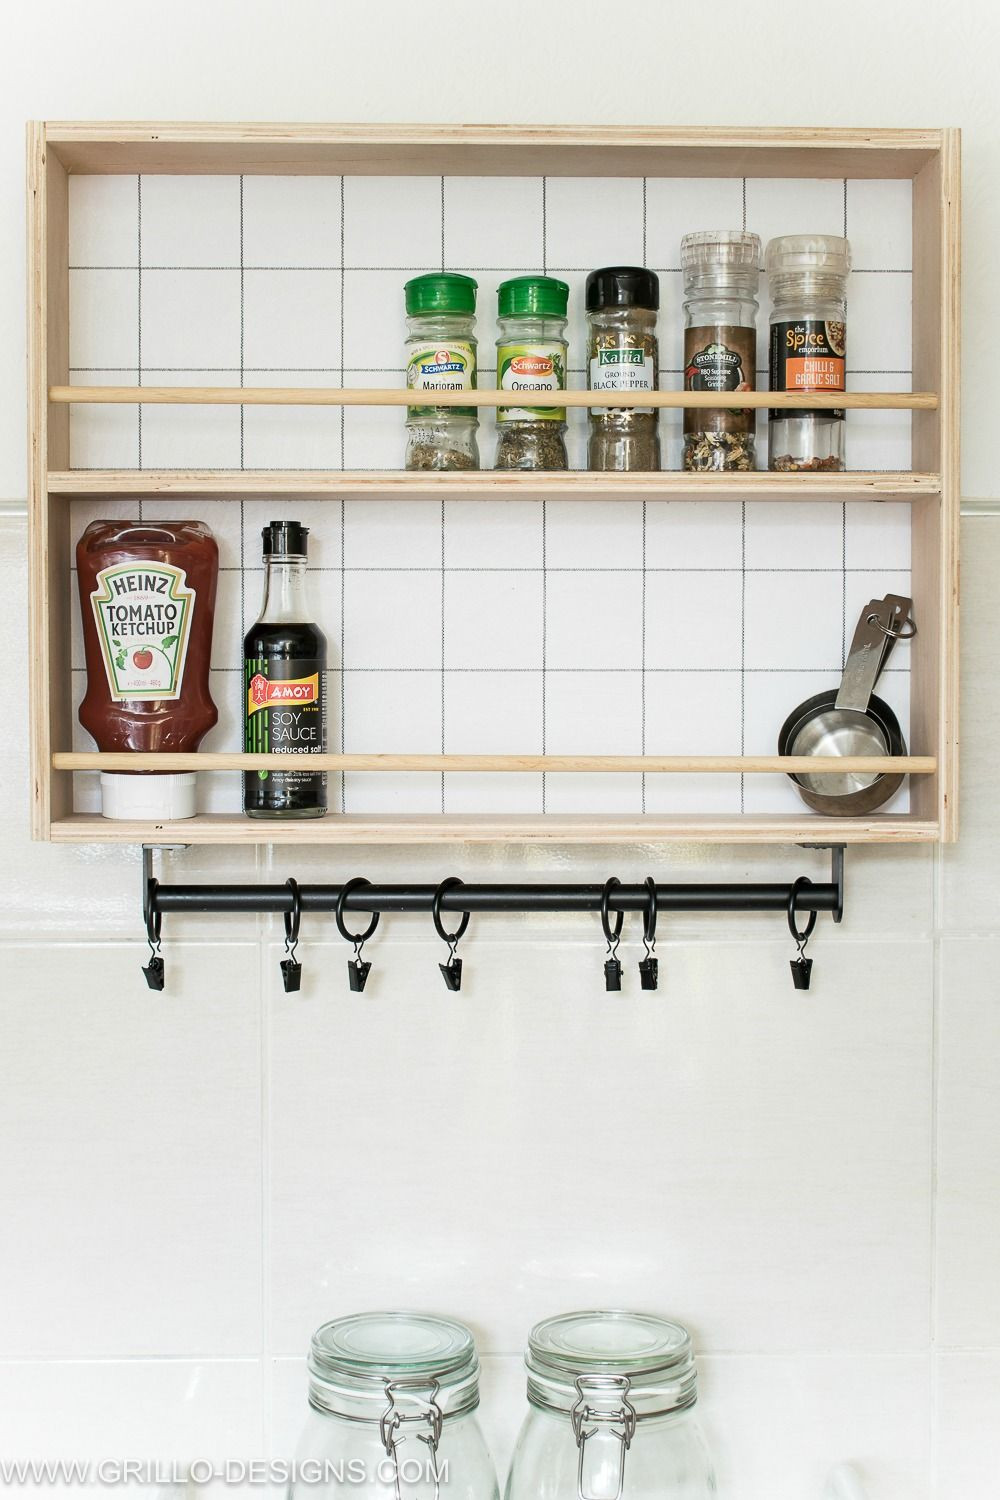 How To Build A Hanging Spice Rack And Ryobi Giveaway Declutter Kitchen Hanging Spice Rack Declutter Kitchen Counter